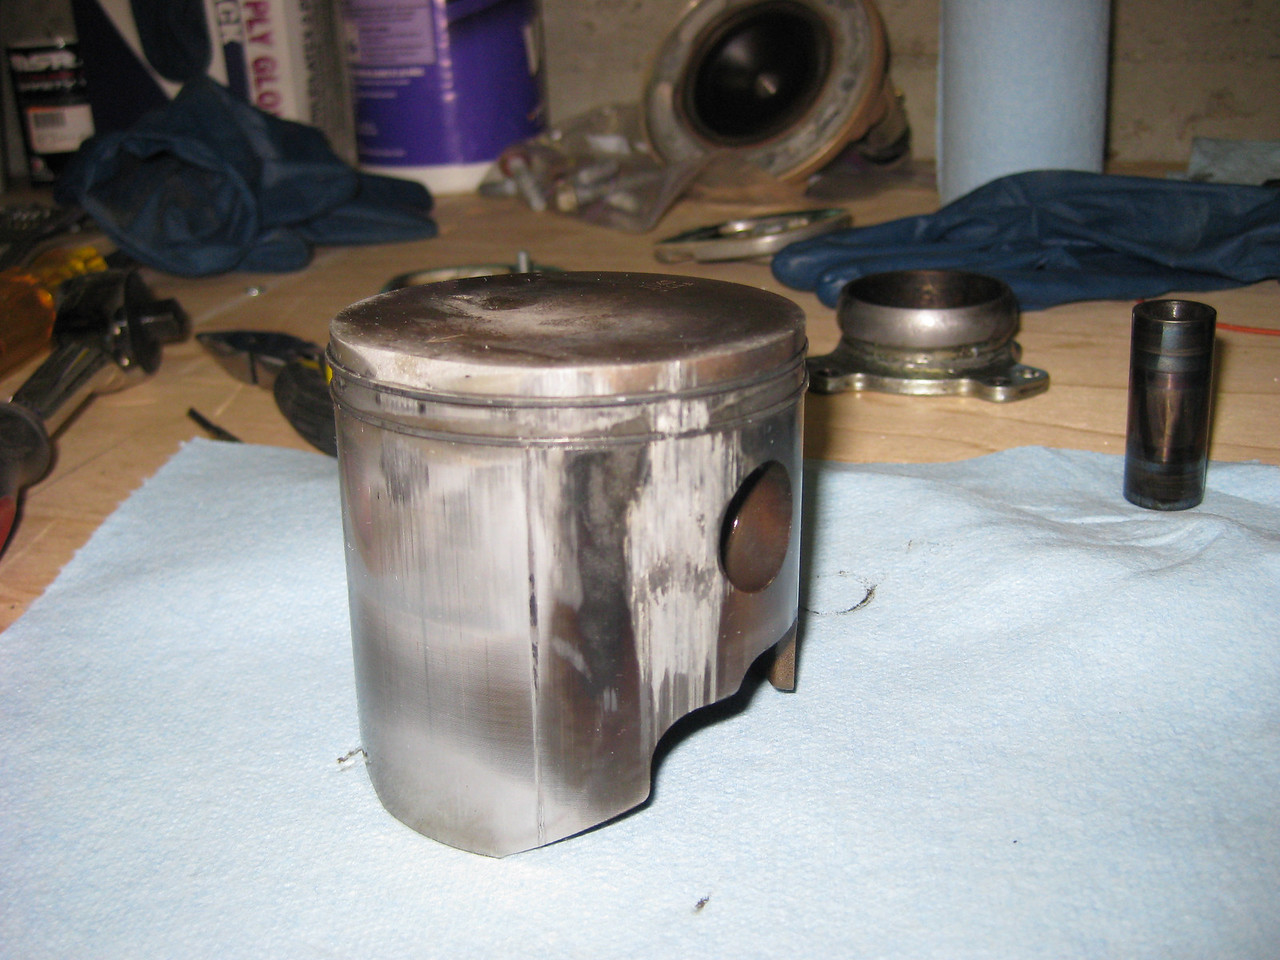 Unhappy piston.  Worn front, and whacked side.